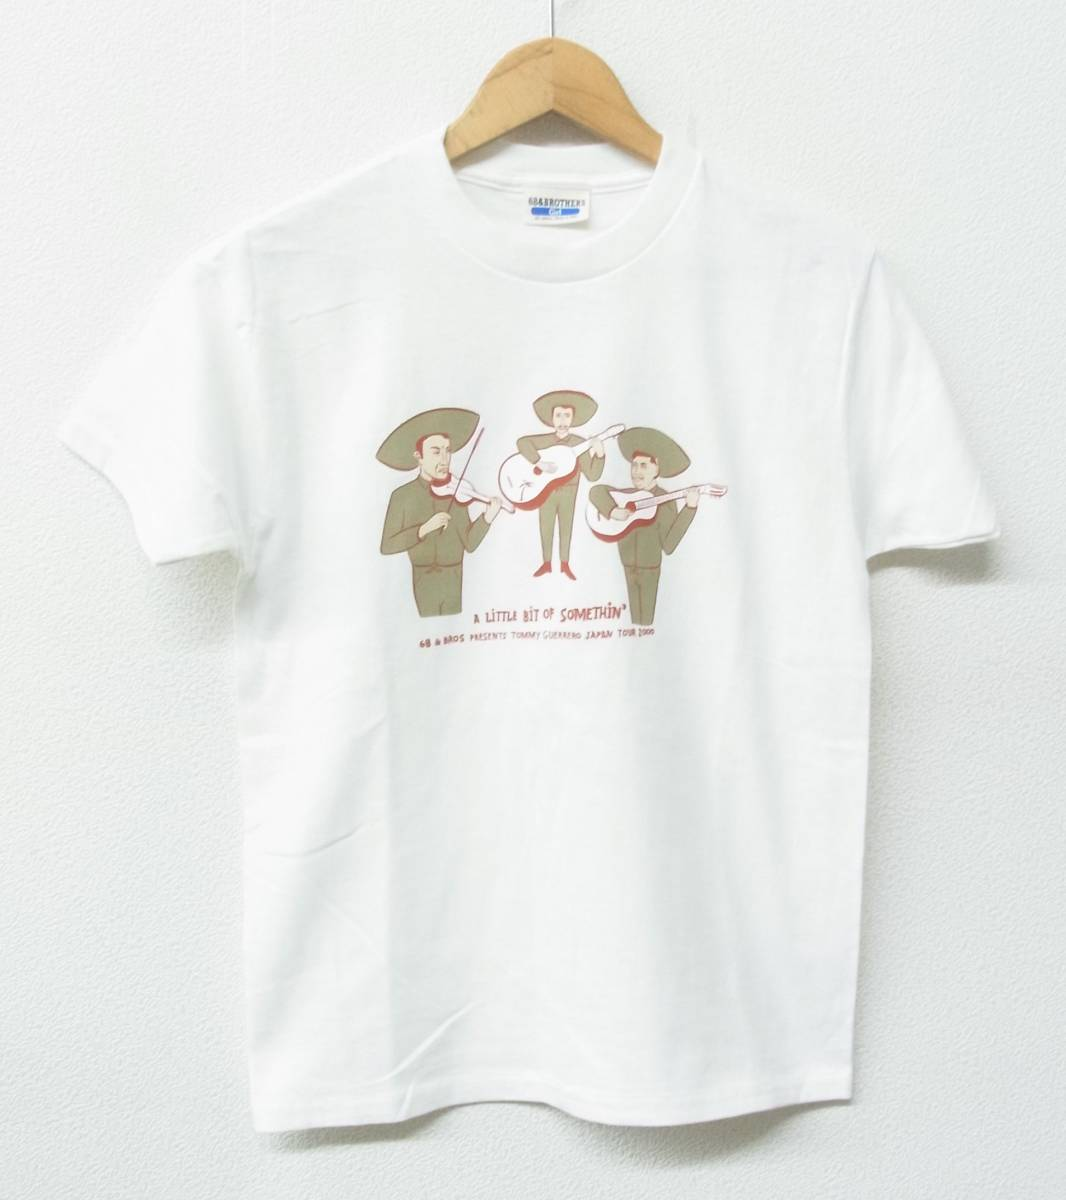 68&BROTHERS PRESENTS Tommy Guerreroトミーゲレロ 2000 JAPAN TOUR Tシャツ *COLOR WHITE マリアッチ*MADE IN USA*GIRLS ①